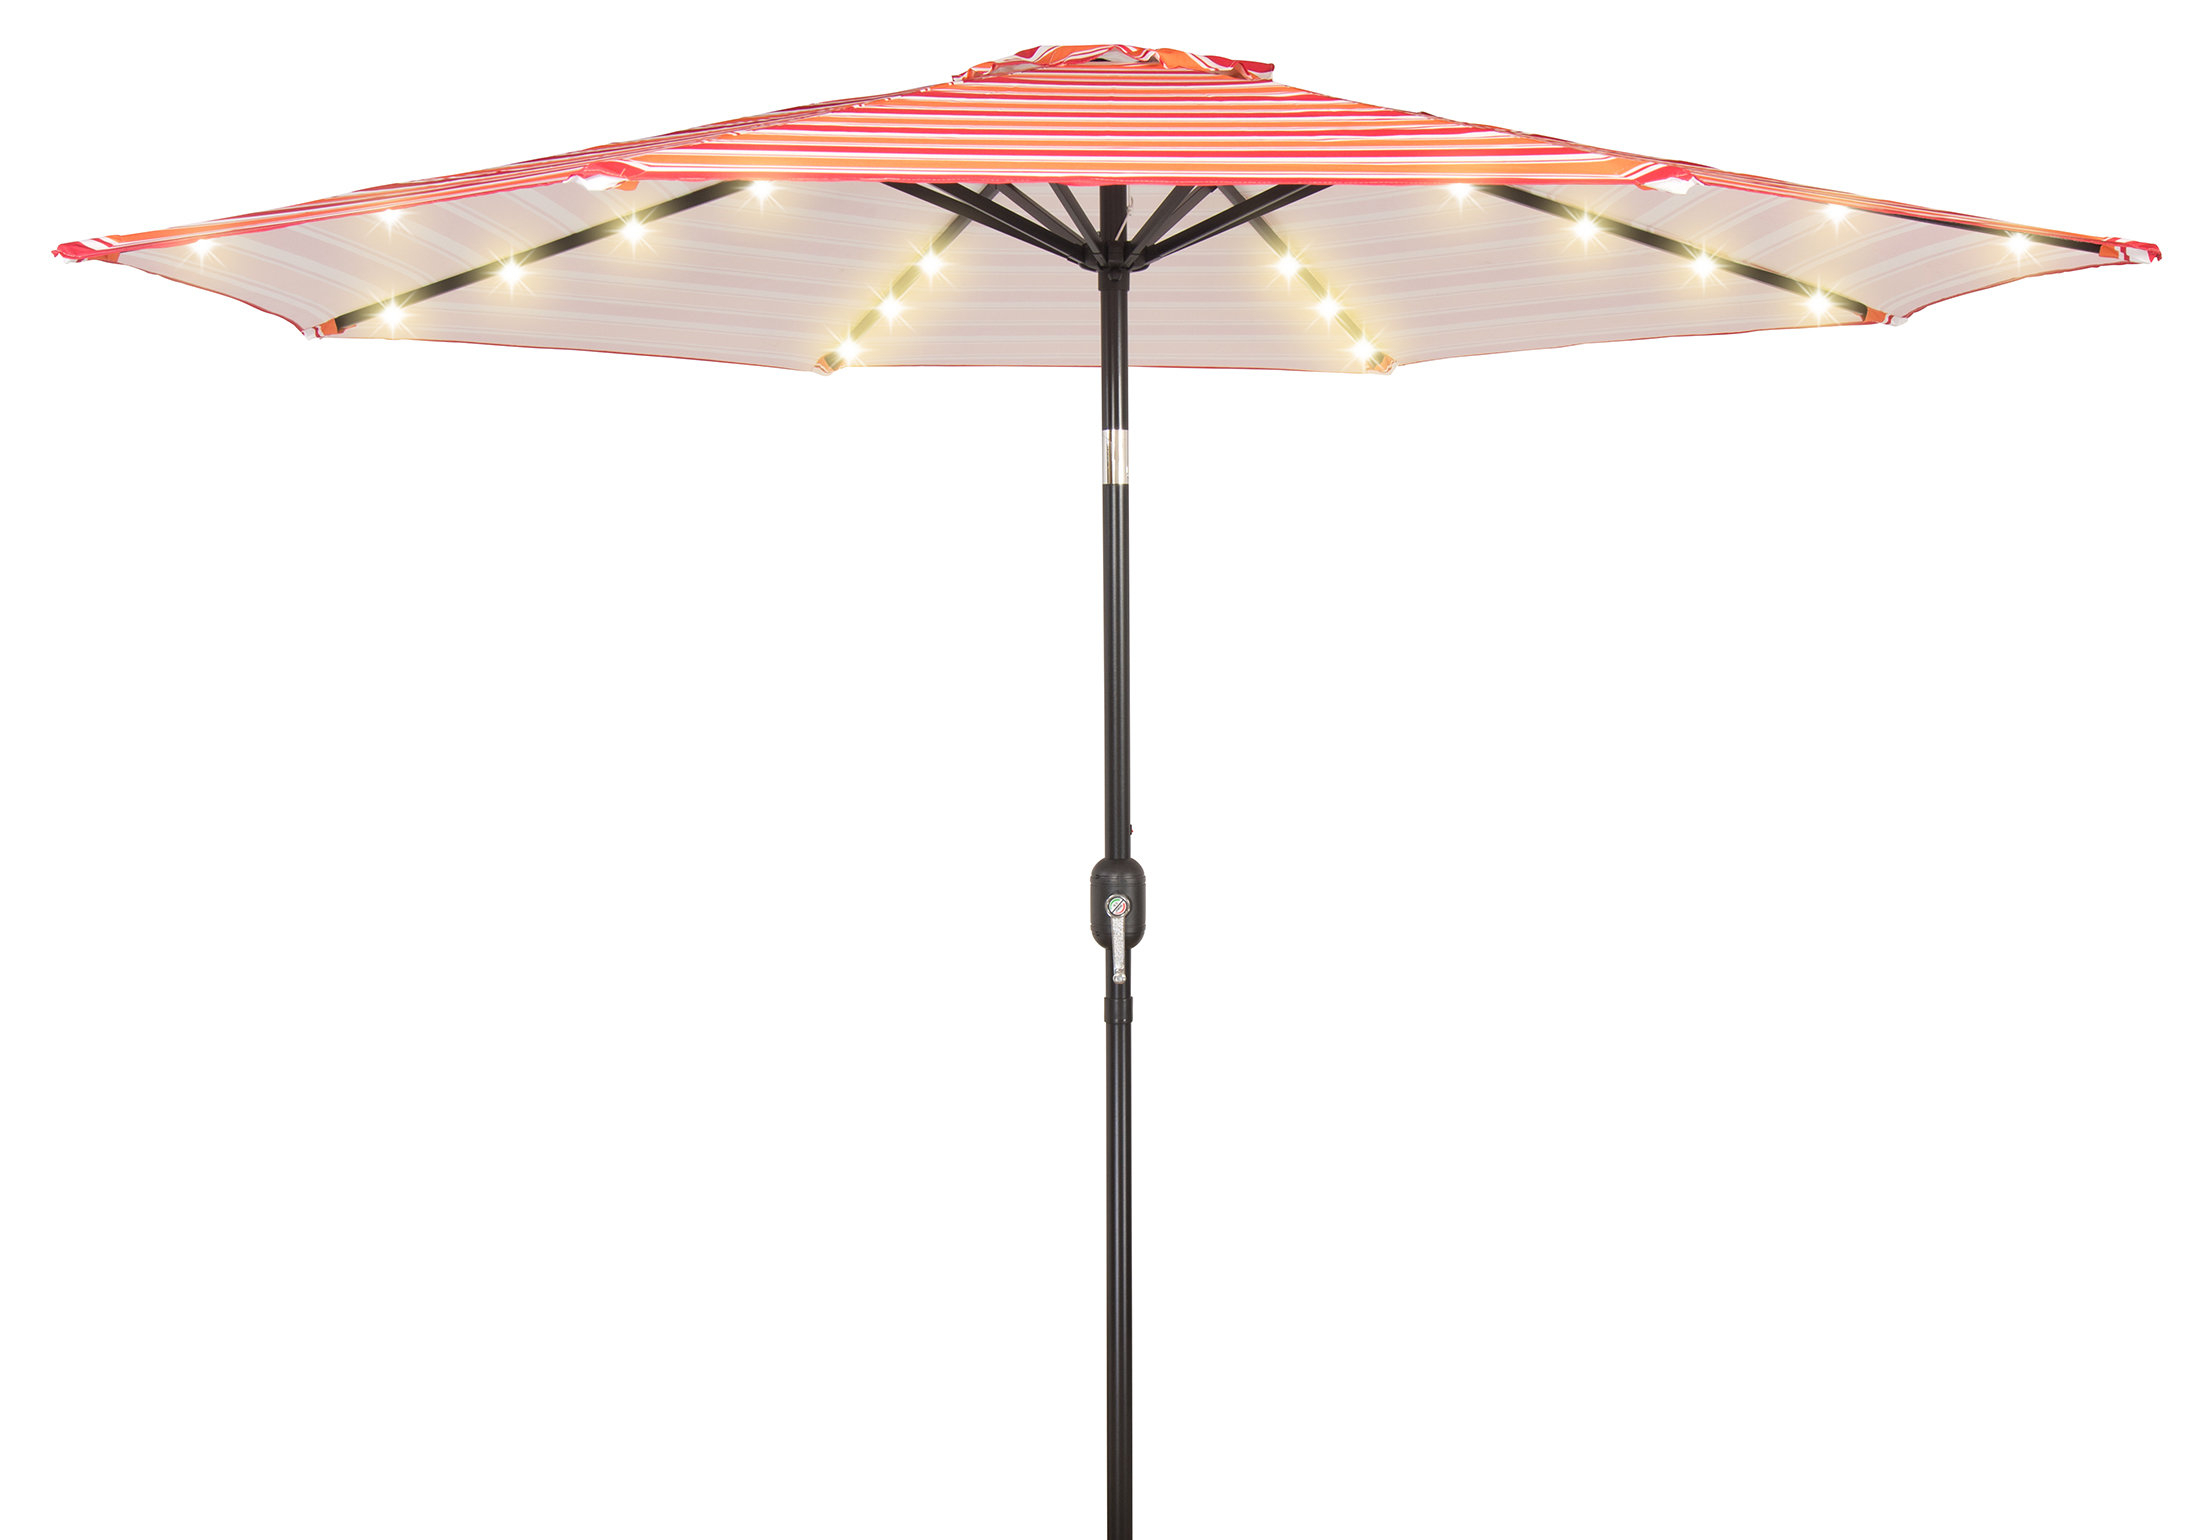 9' Lighted Umbrella Intended For Most Current Branam Lighted Umbrellas (View 1 of 20)